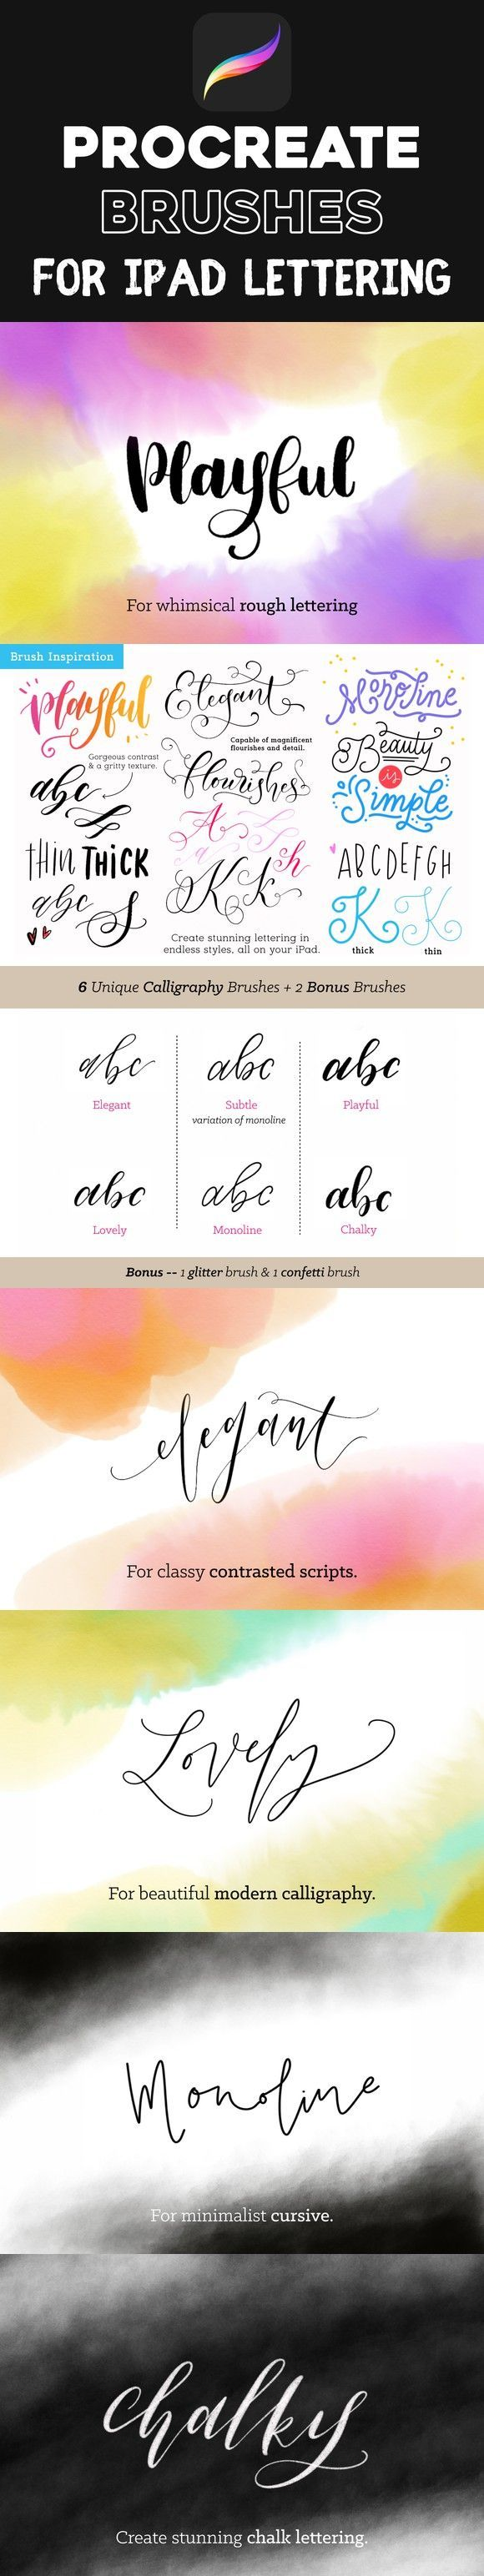 Procreate Brushes for iPad Lettering. Photoshop Brushes. $6.00 | hand lettering